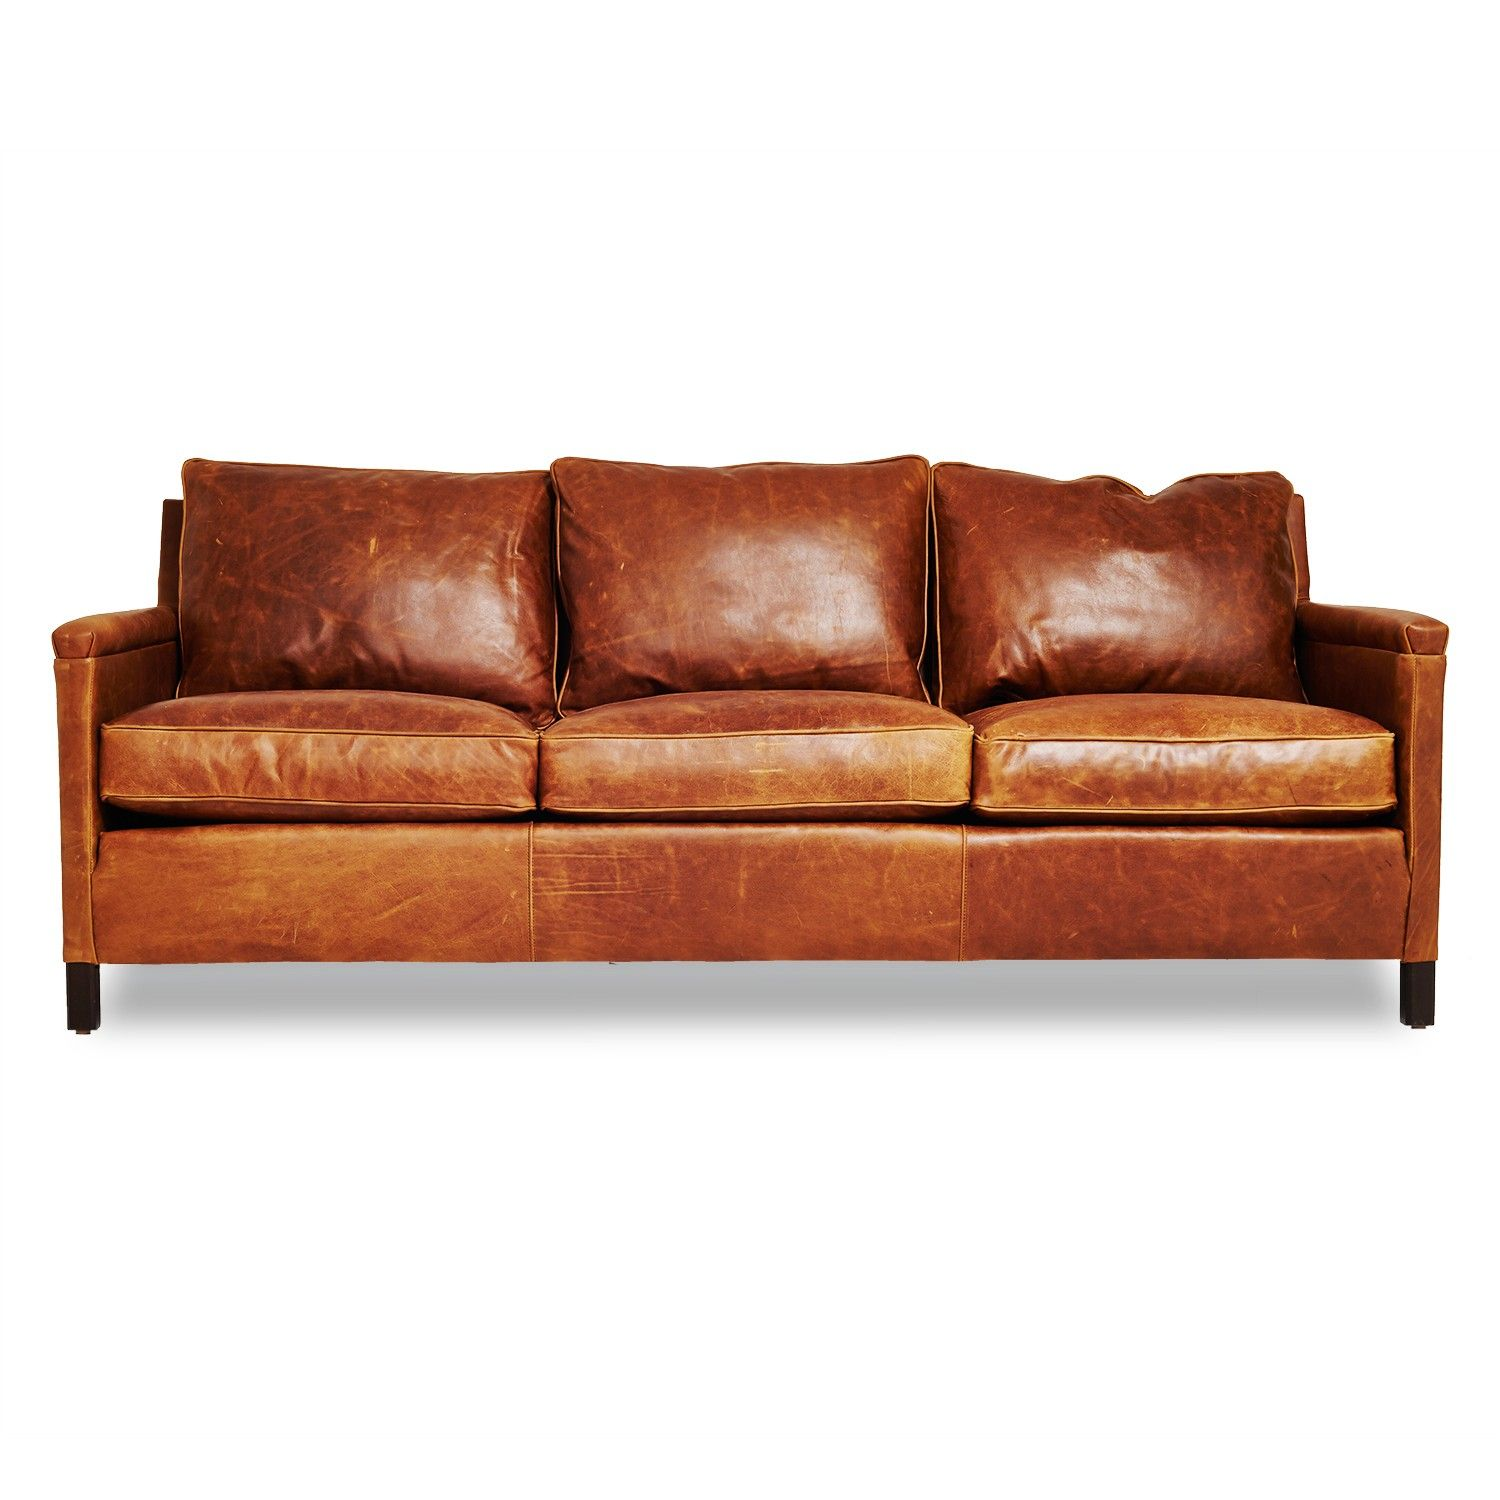 The Heston Gives An Urban Edge To The Classic Leather Sofa Featuring A Cognac Hued Exterior